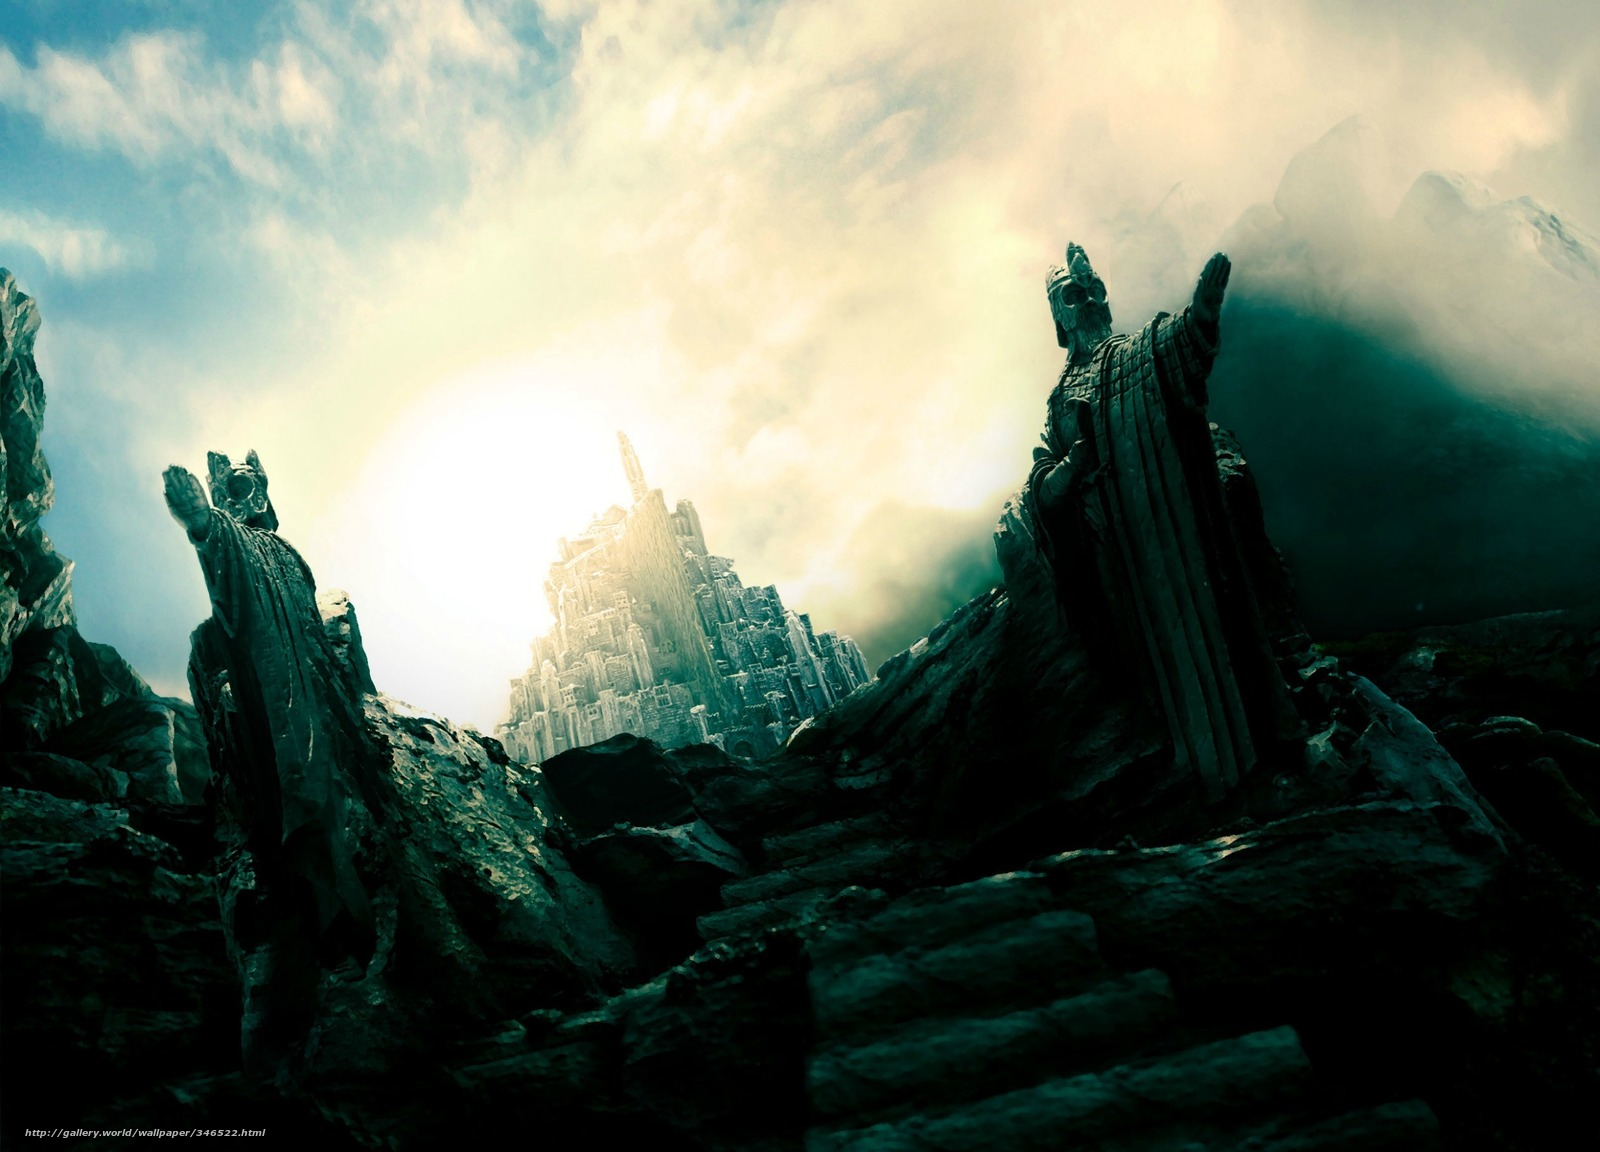 Download wallpaper film Lord of the Rings Gondor JRR Tolkien 1600x1152